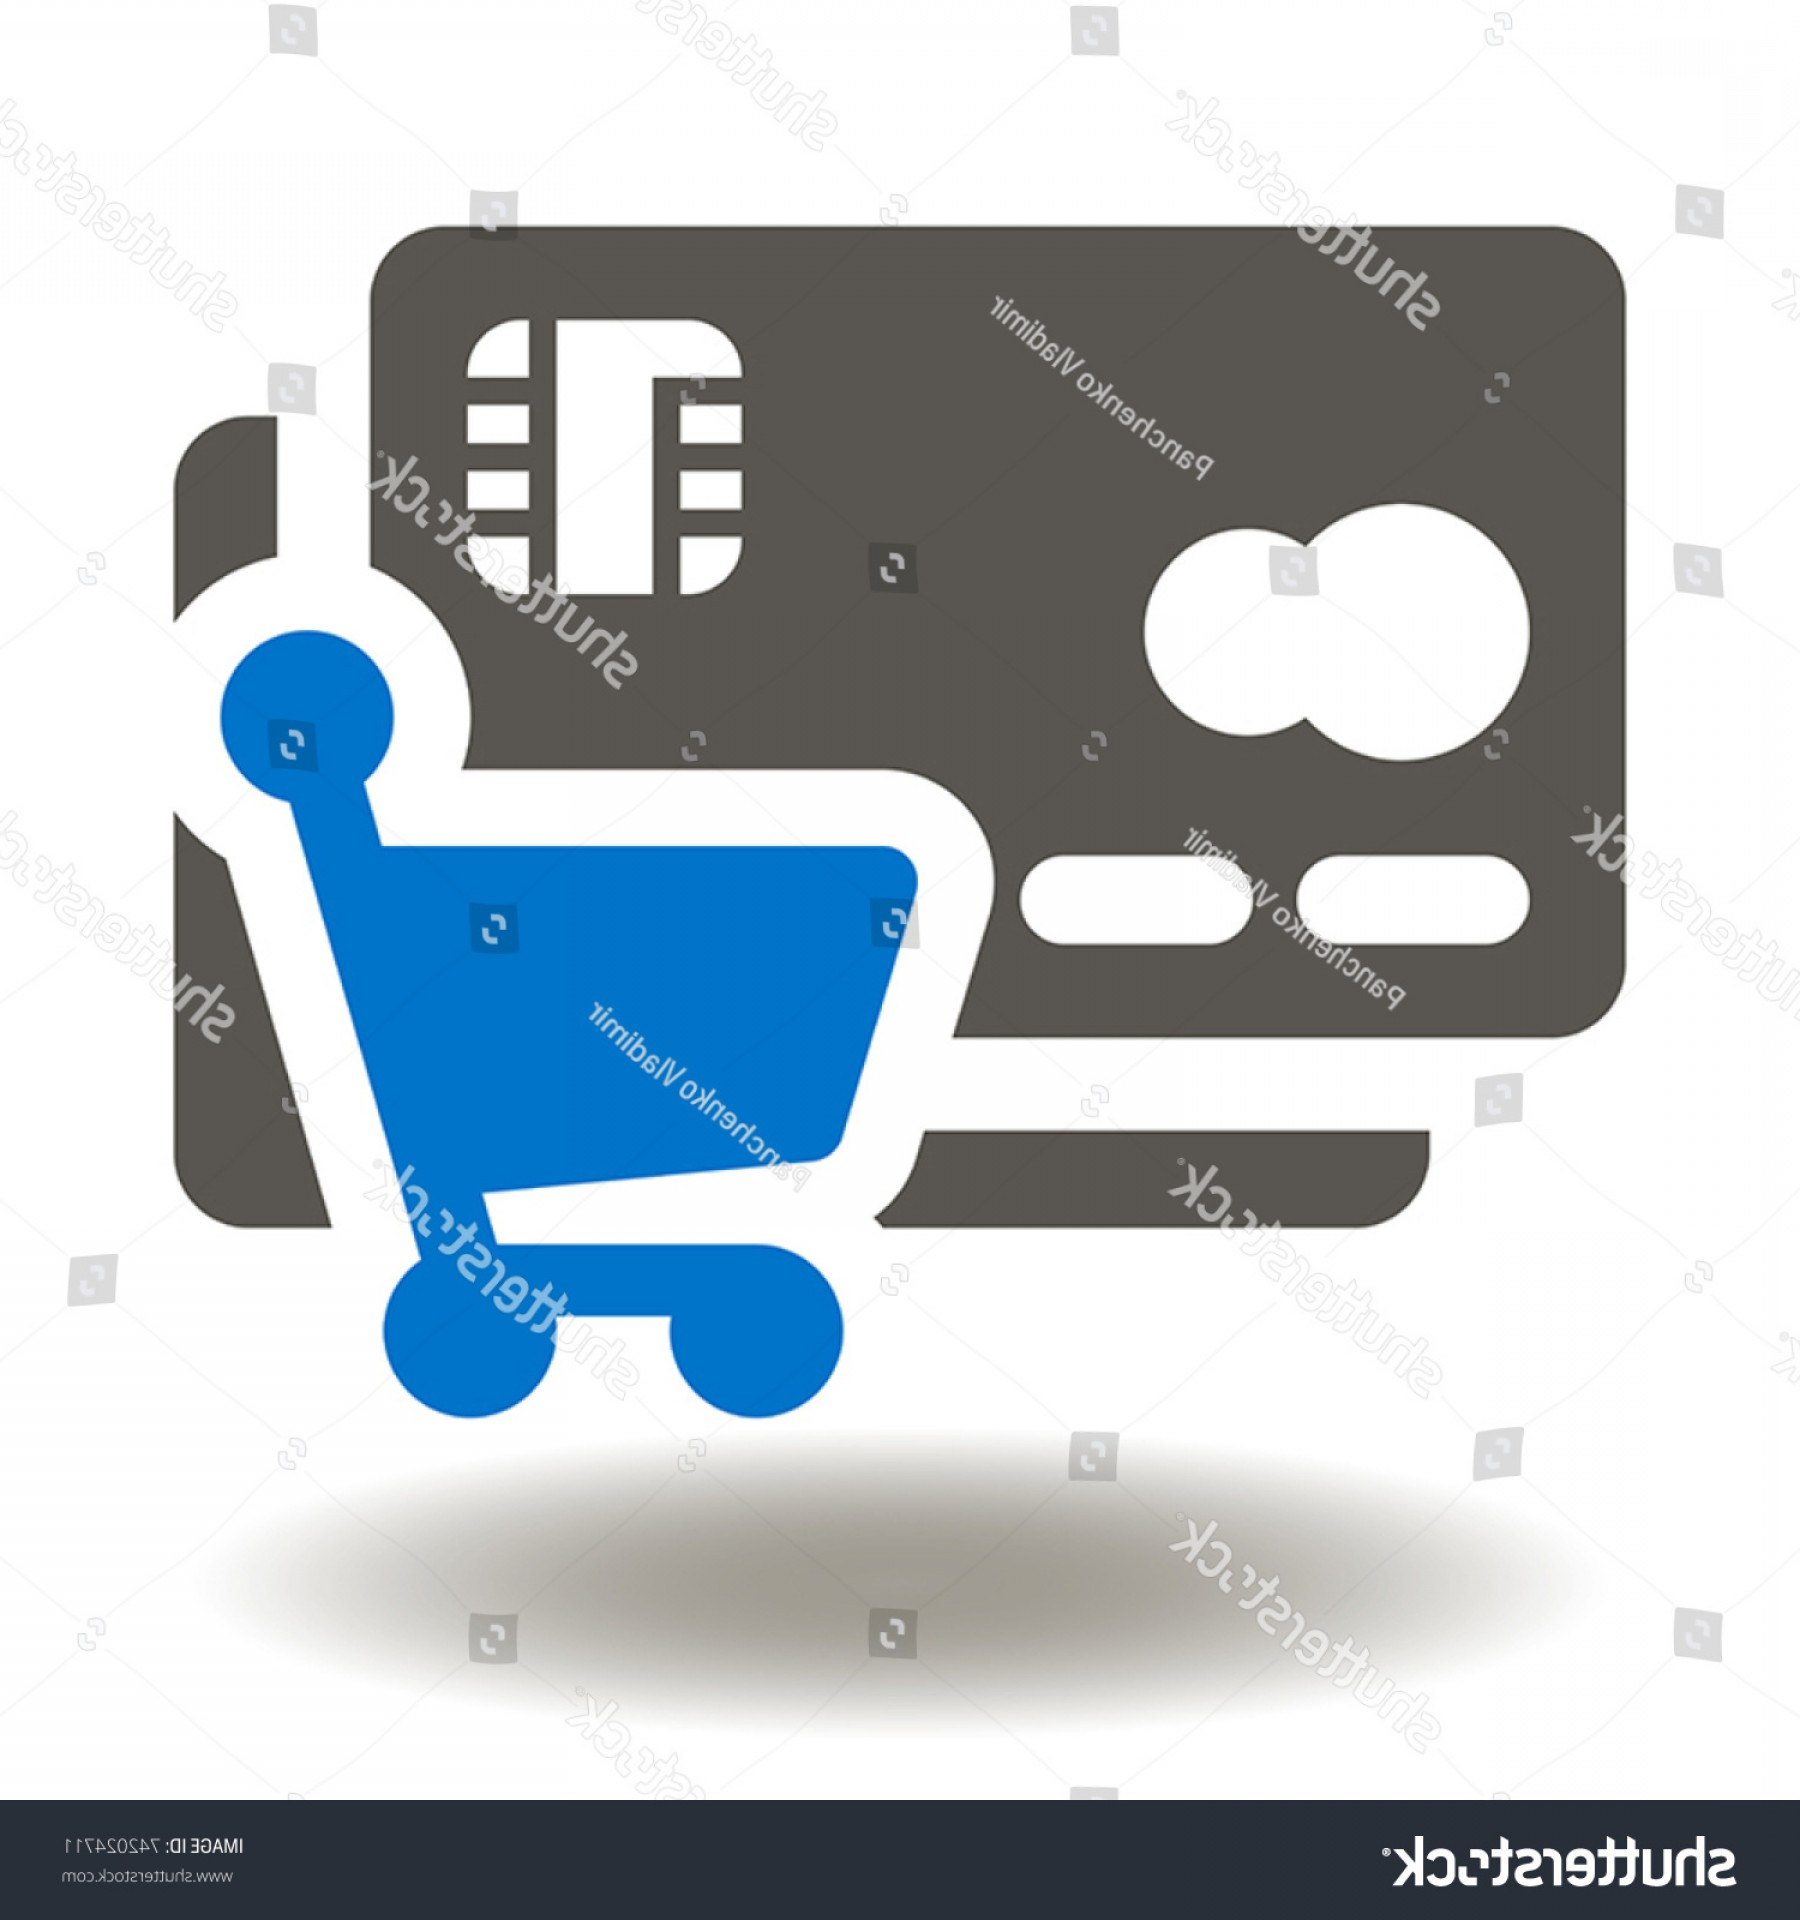 Credit Card Logos Vector: Credit Card Shopping Cart Icon Vector